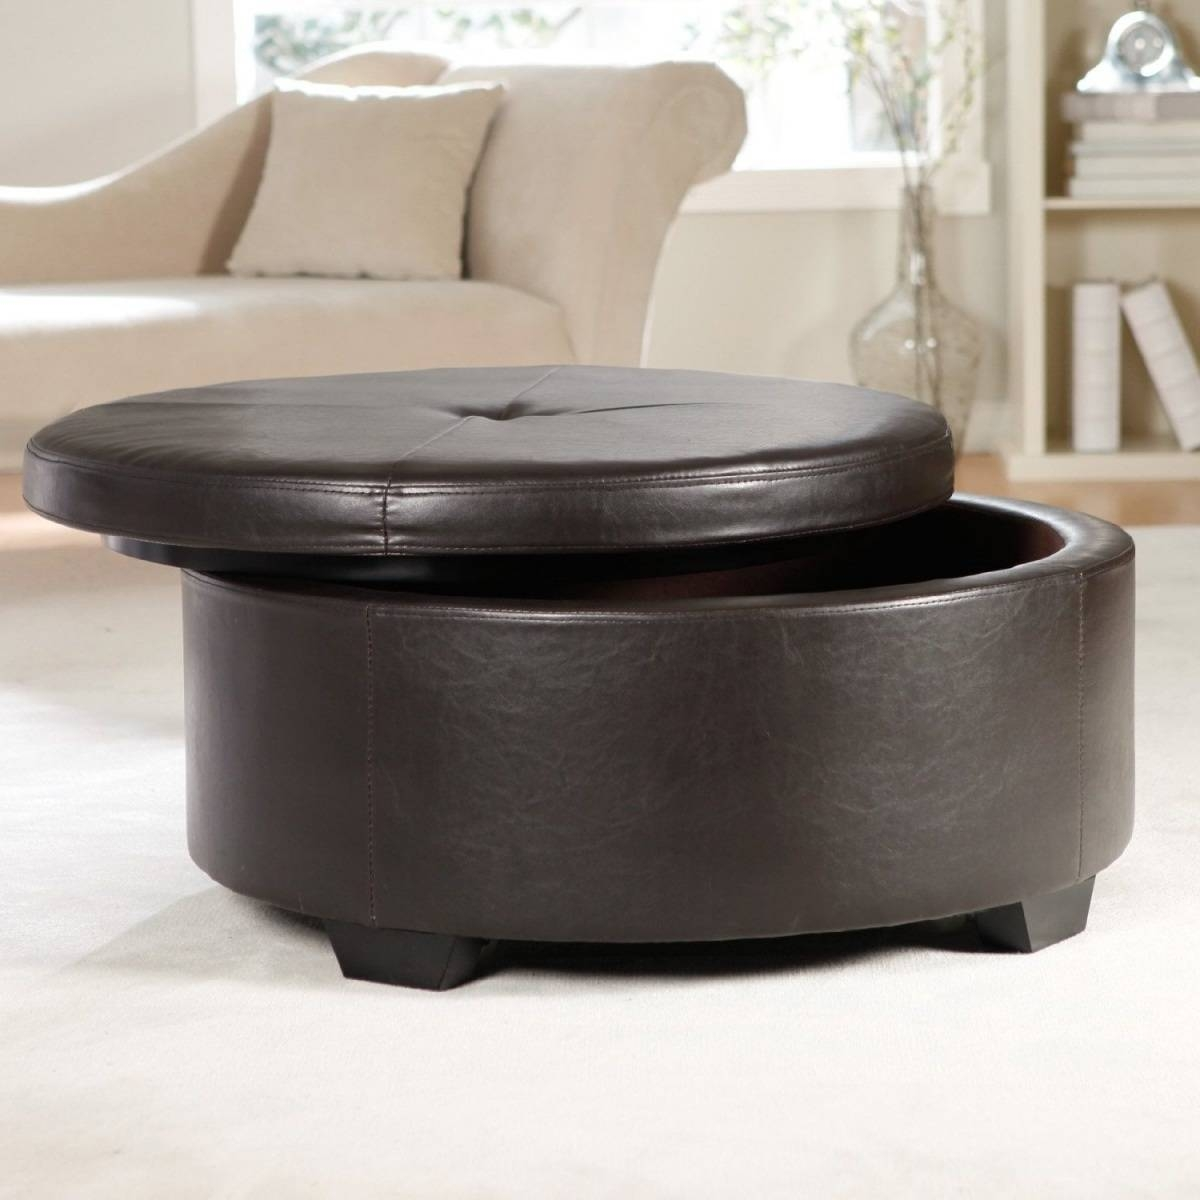 30 inspirations of round upholstered coffee tables perfect coffee table storage ottomans underneath with round upholstered coffee tables image 22 of 30 geotapseo Image collections